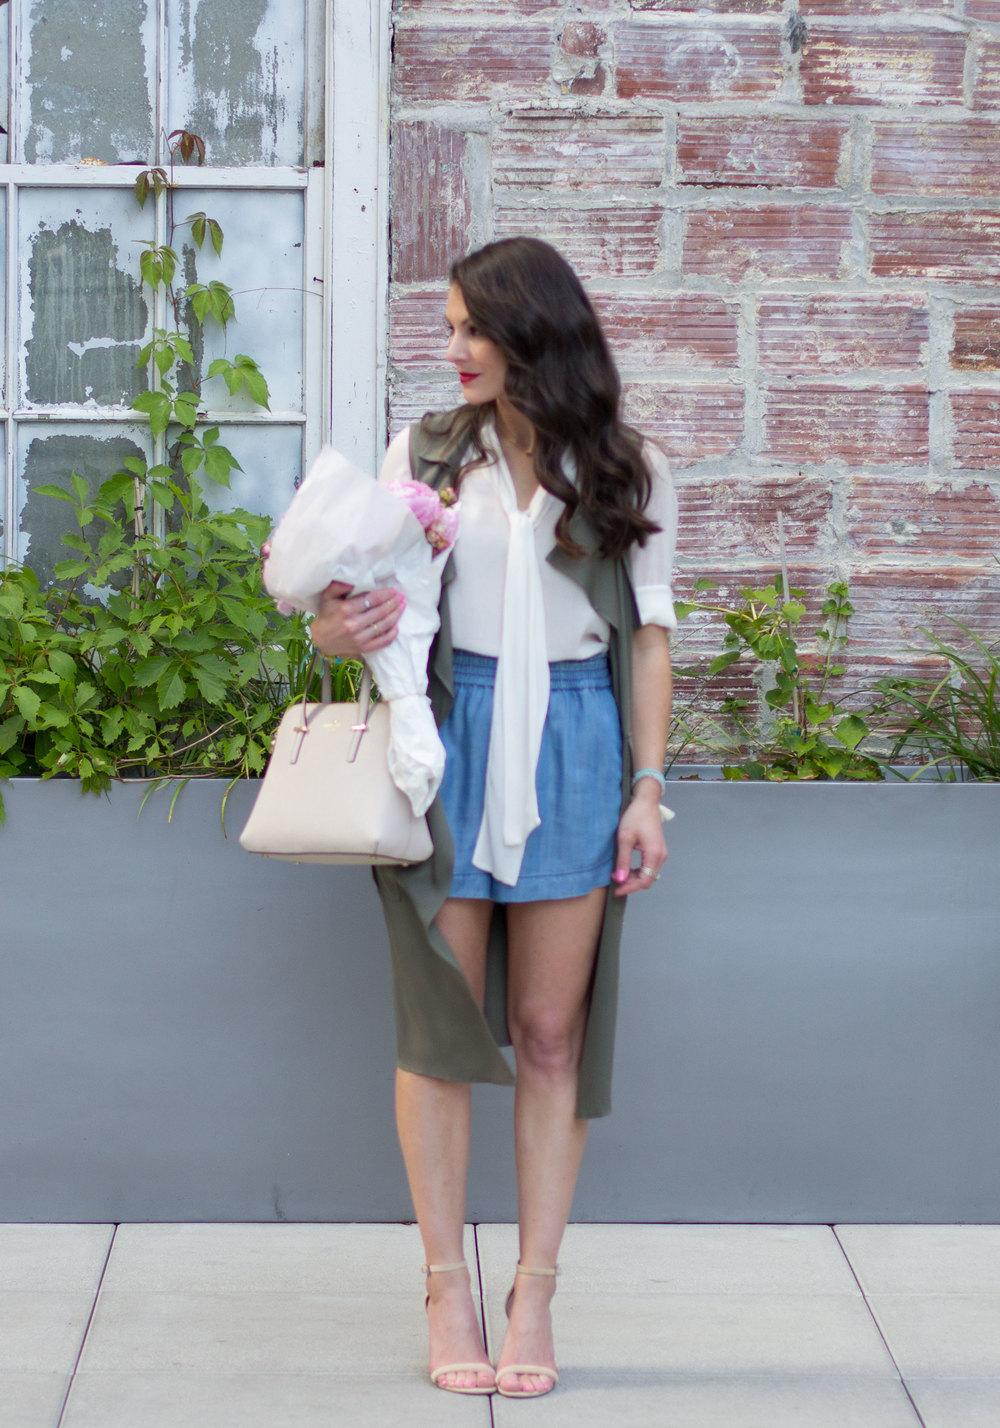 Cute Summer Work Outfit, How To Wear Shorts To Work, Who What Wear for Target Smocked Chambray Shorts and Sleeveless Trench, White Bow Blouse, Kate Space Cedar Street Maise, Aldo Cicci Sandals, and Jewelry from Something Silver.